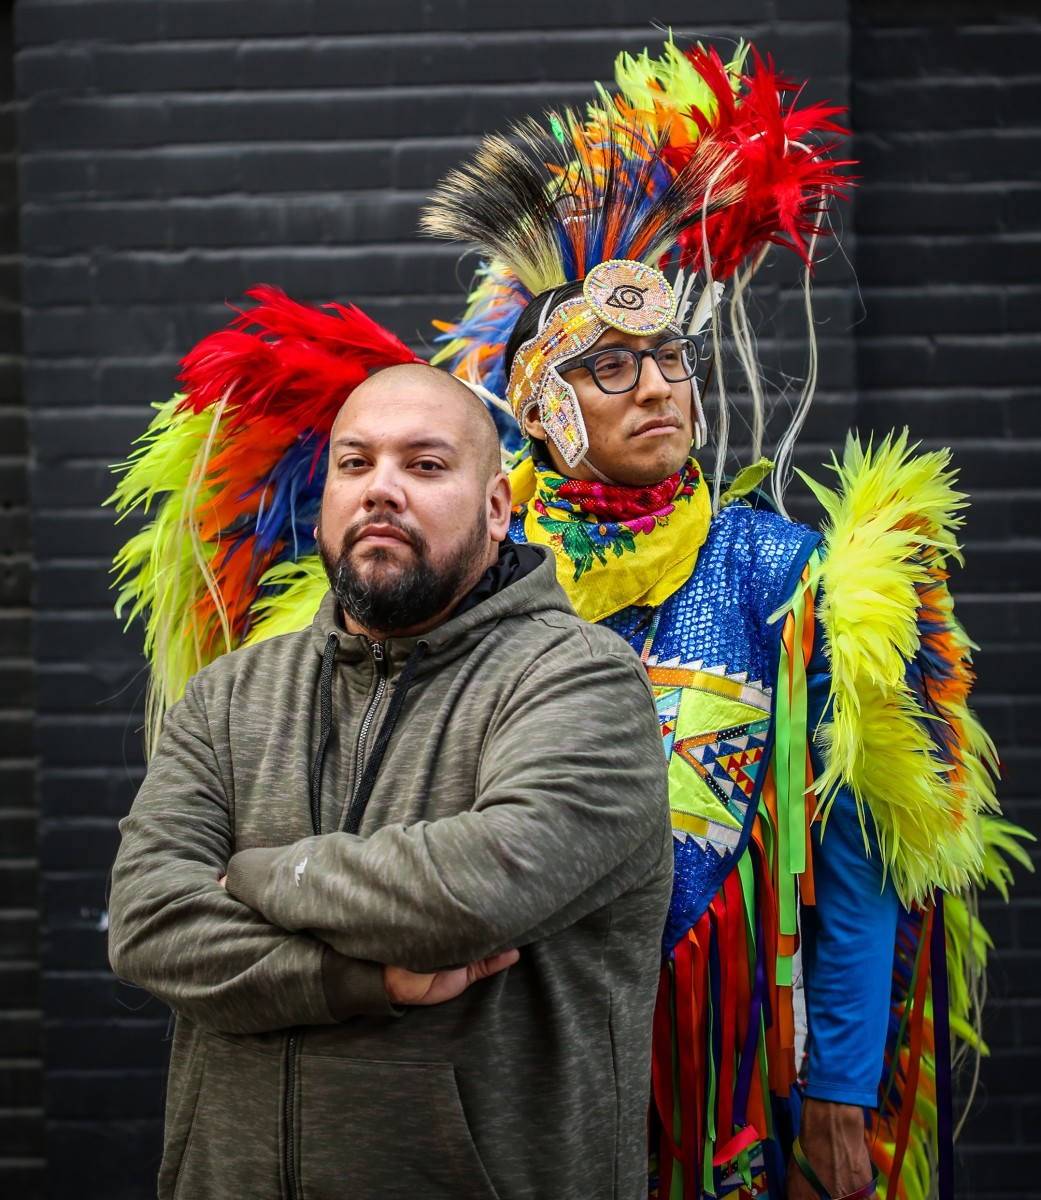 DJ Shub and Toronto electronic artist Classic Roots worked together to create DJ Shub's latest video.